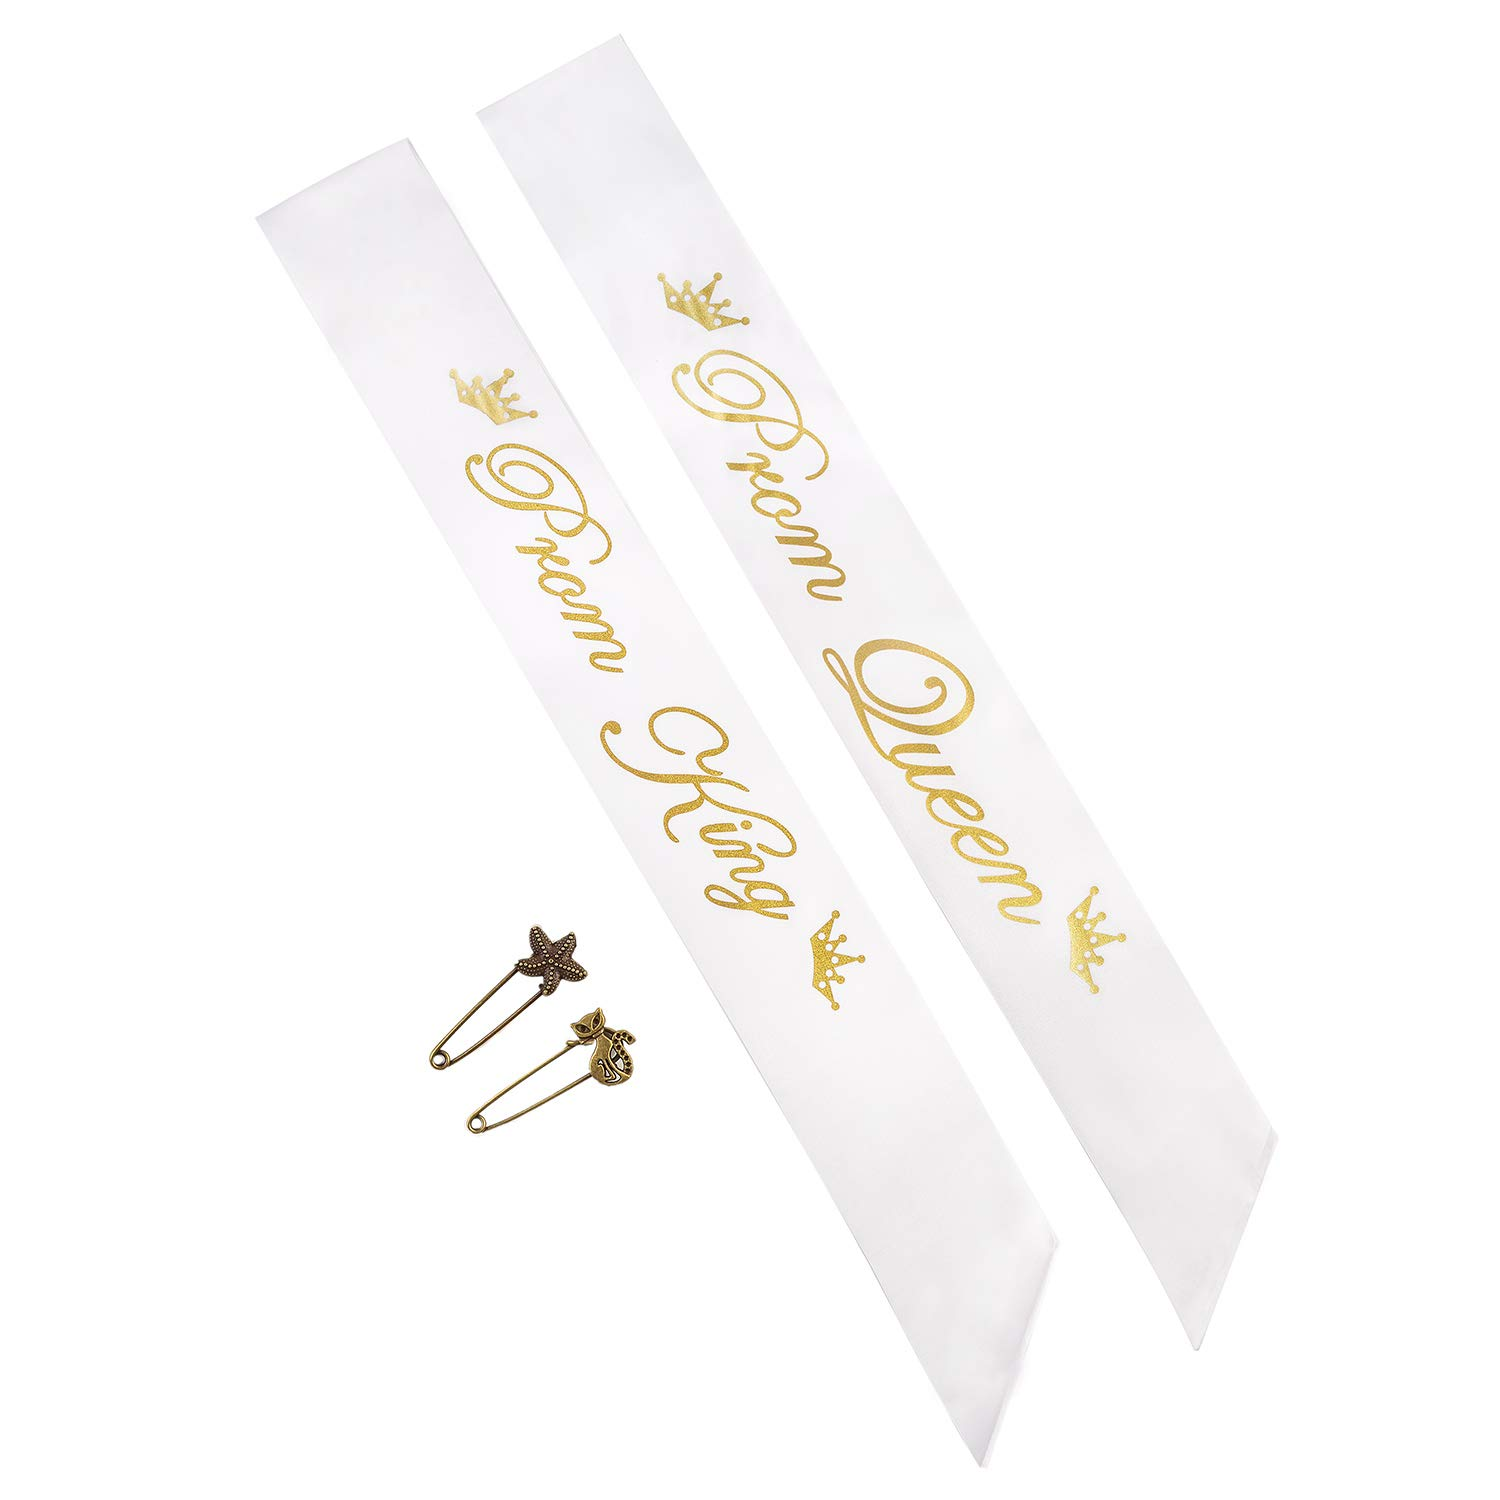 Yolito 2 Pack Prom King and Prom Queen Satin Sash,School Party Accessory,White with Gold Letter